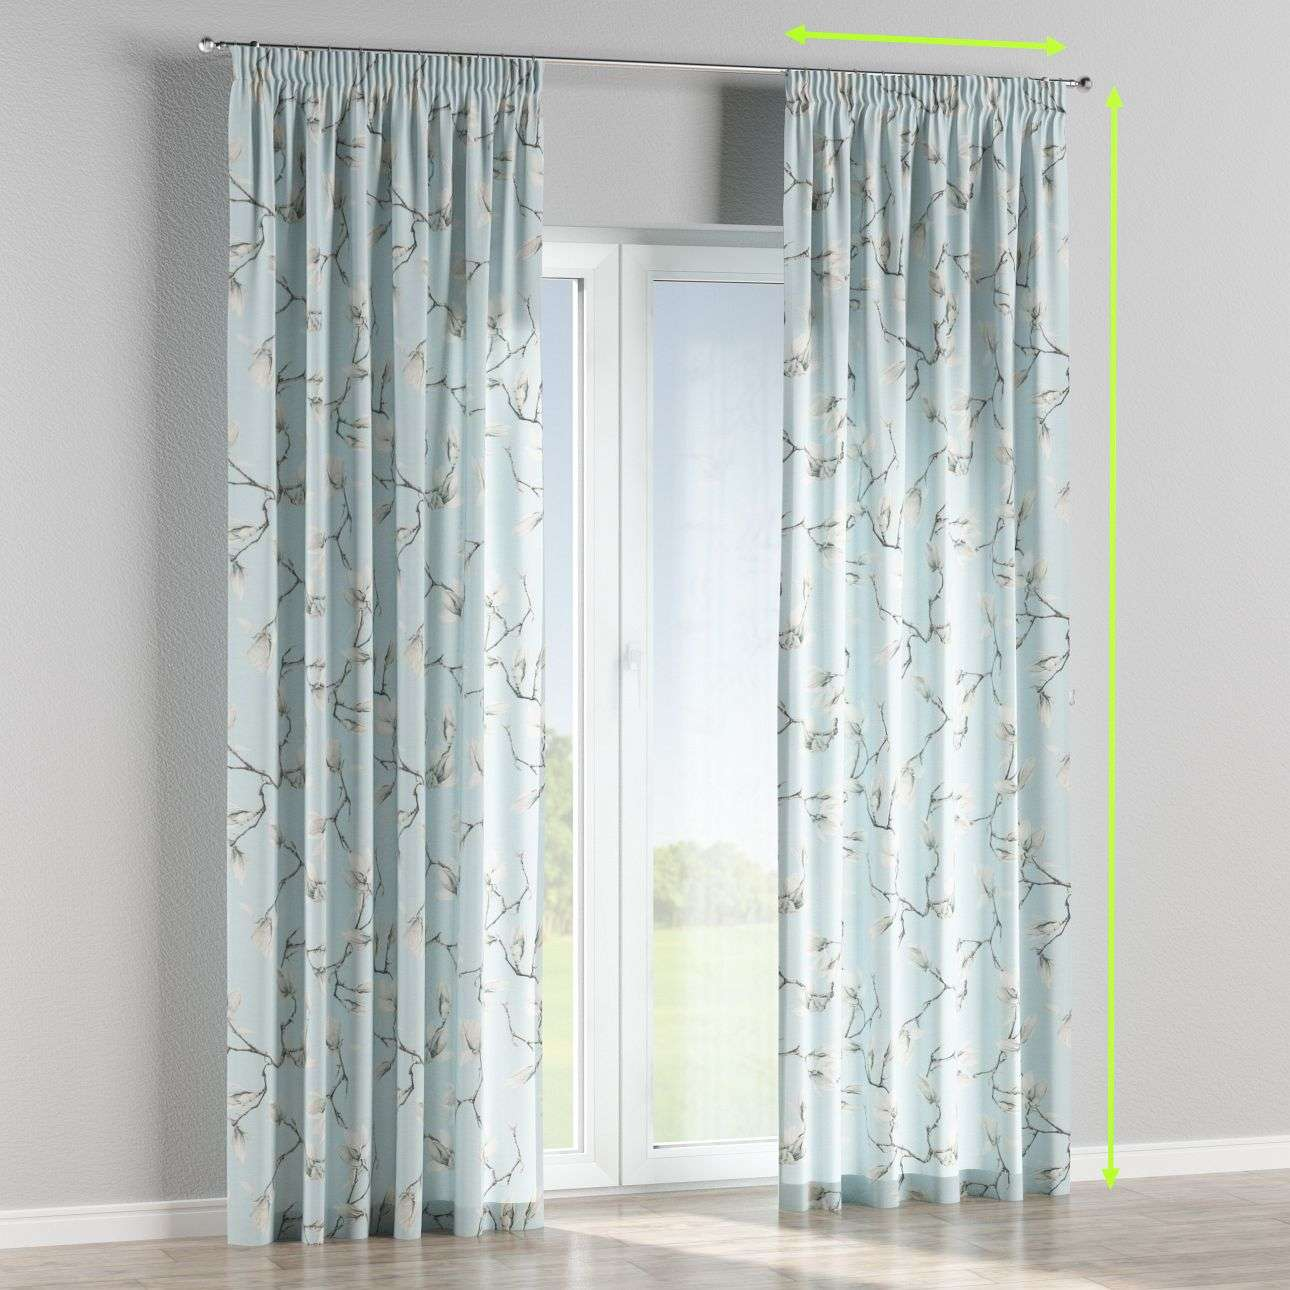 Pencil pleat lined curtains in collection Flowers, fabric: 311-14